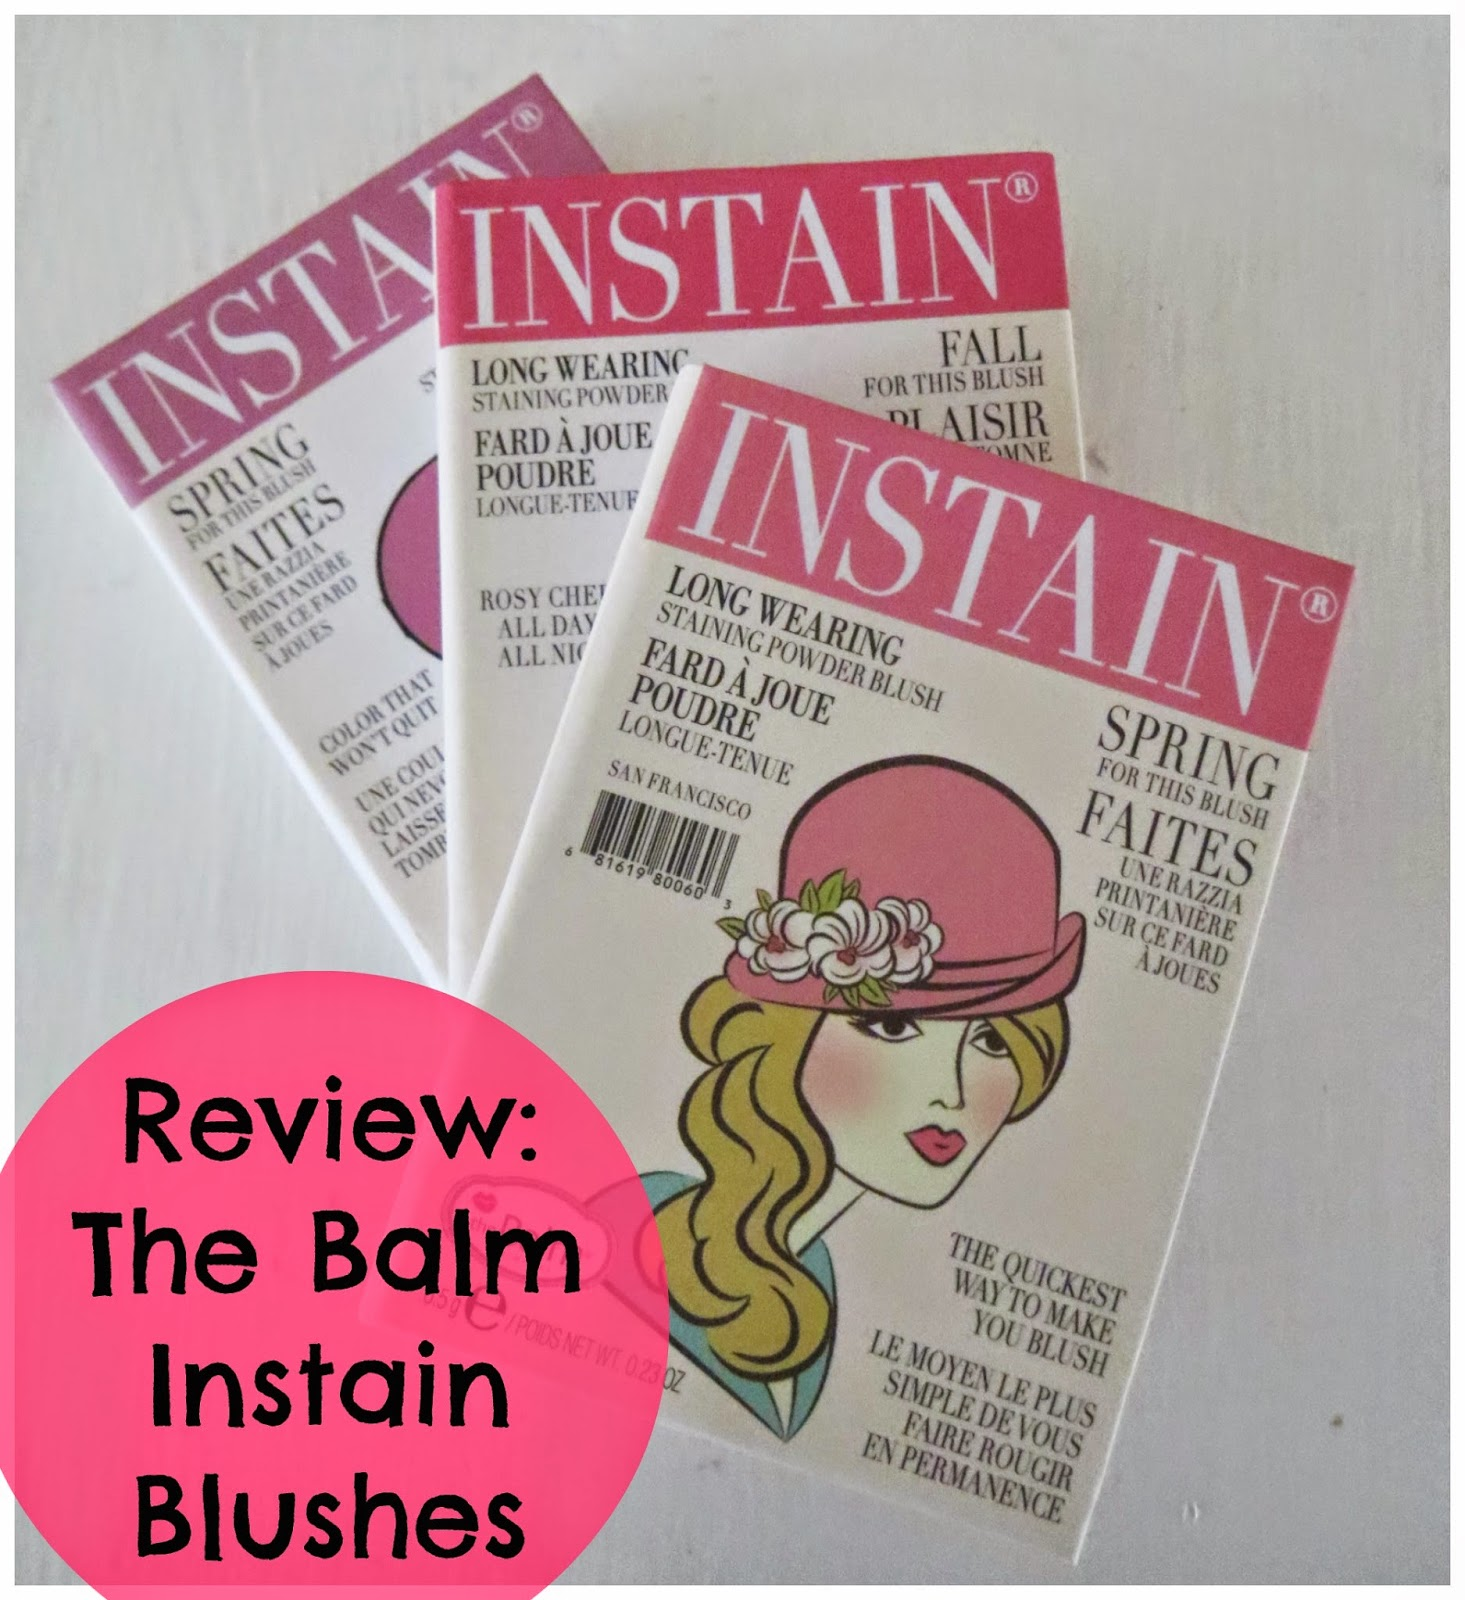 Review: The Balm Instain Blushes (Pink Preference)